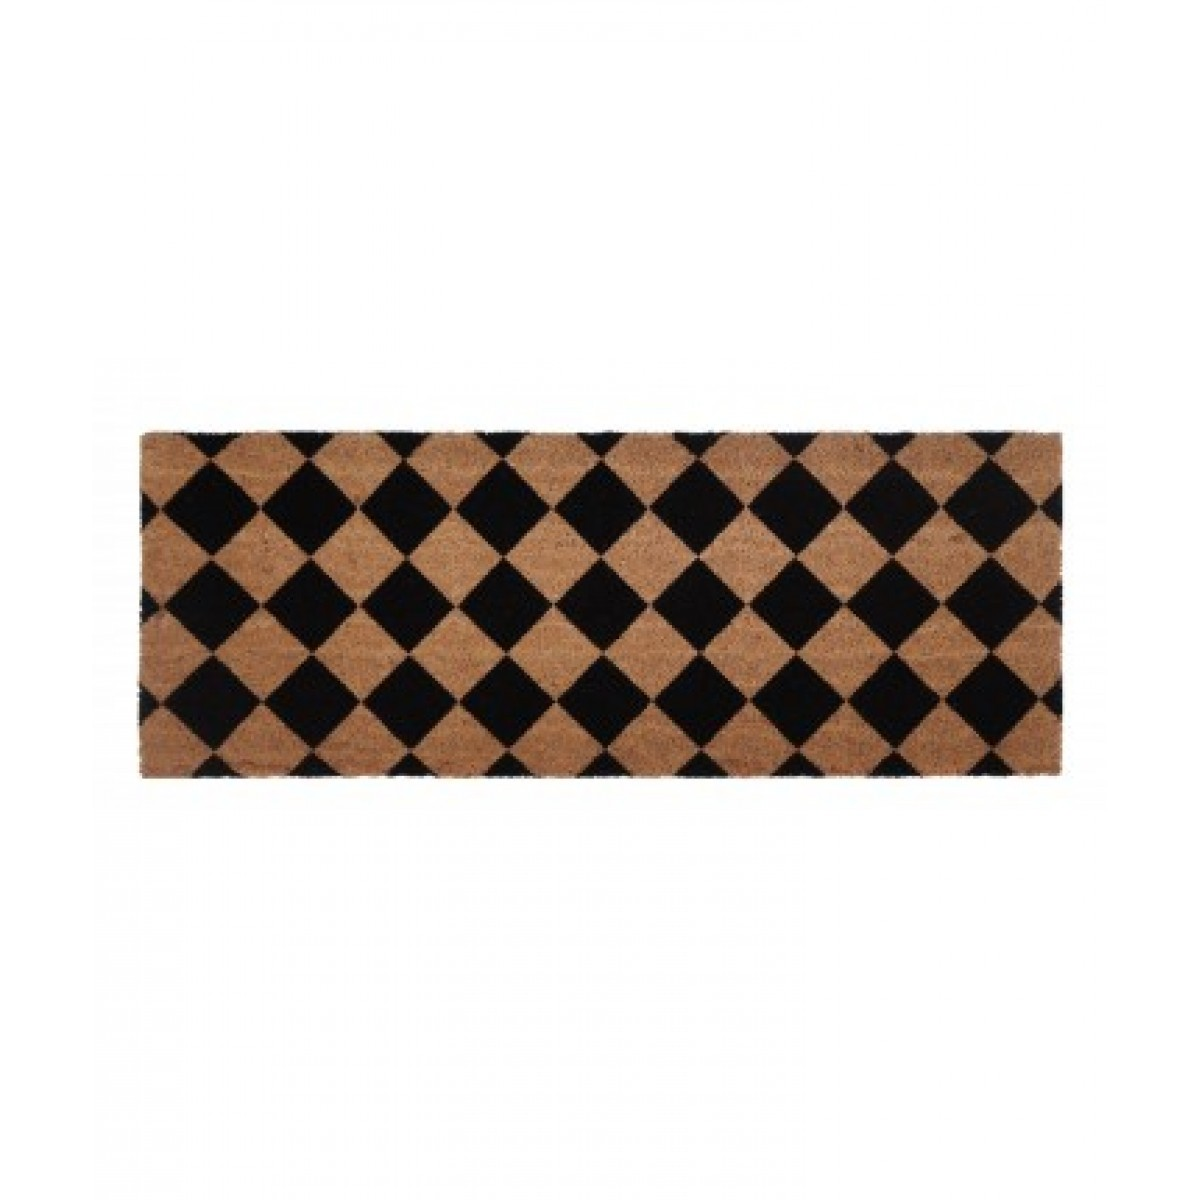 PVC Backet Coir Door Mat Black Diamond